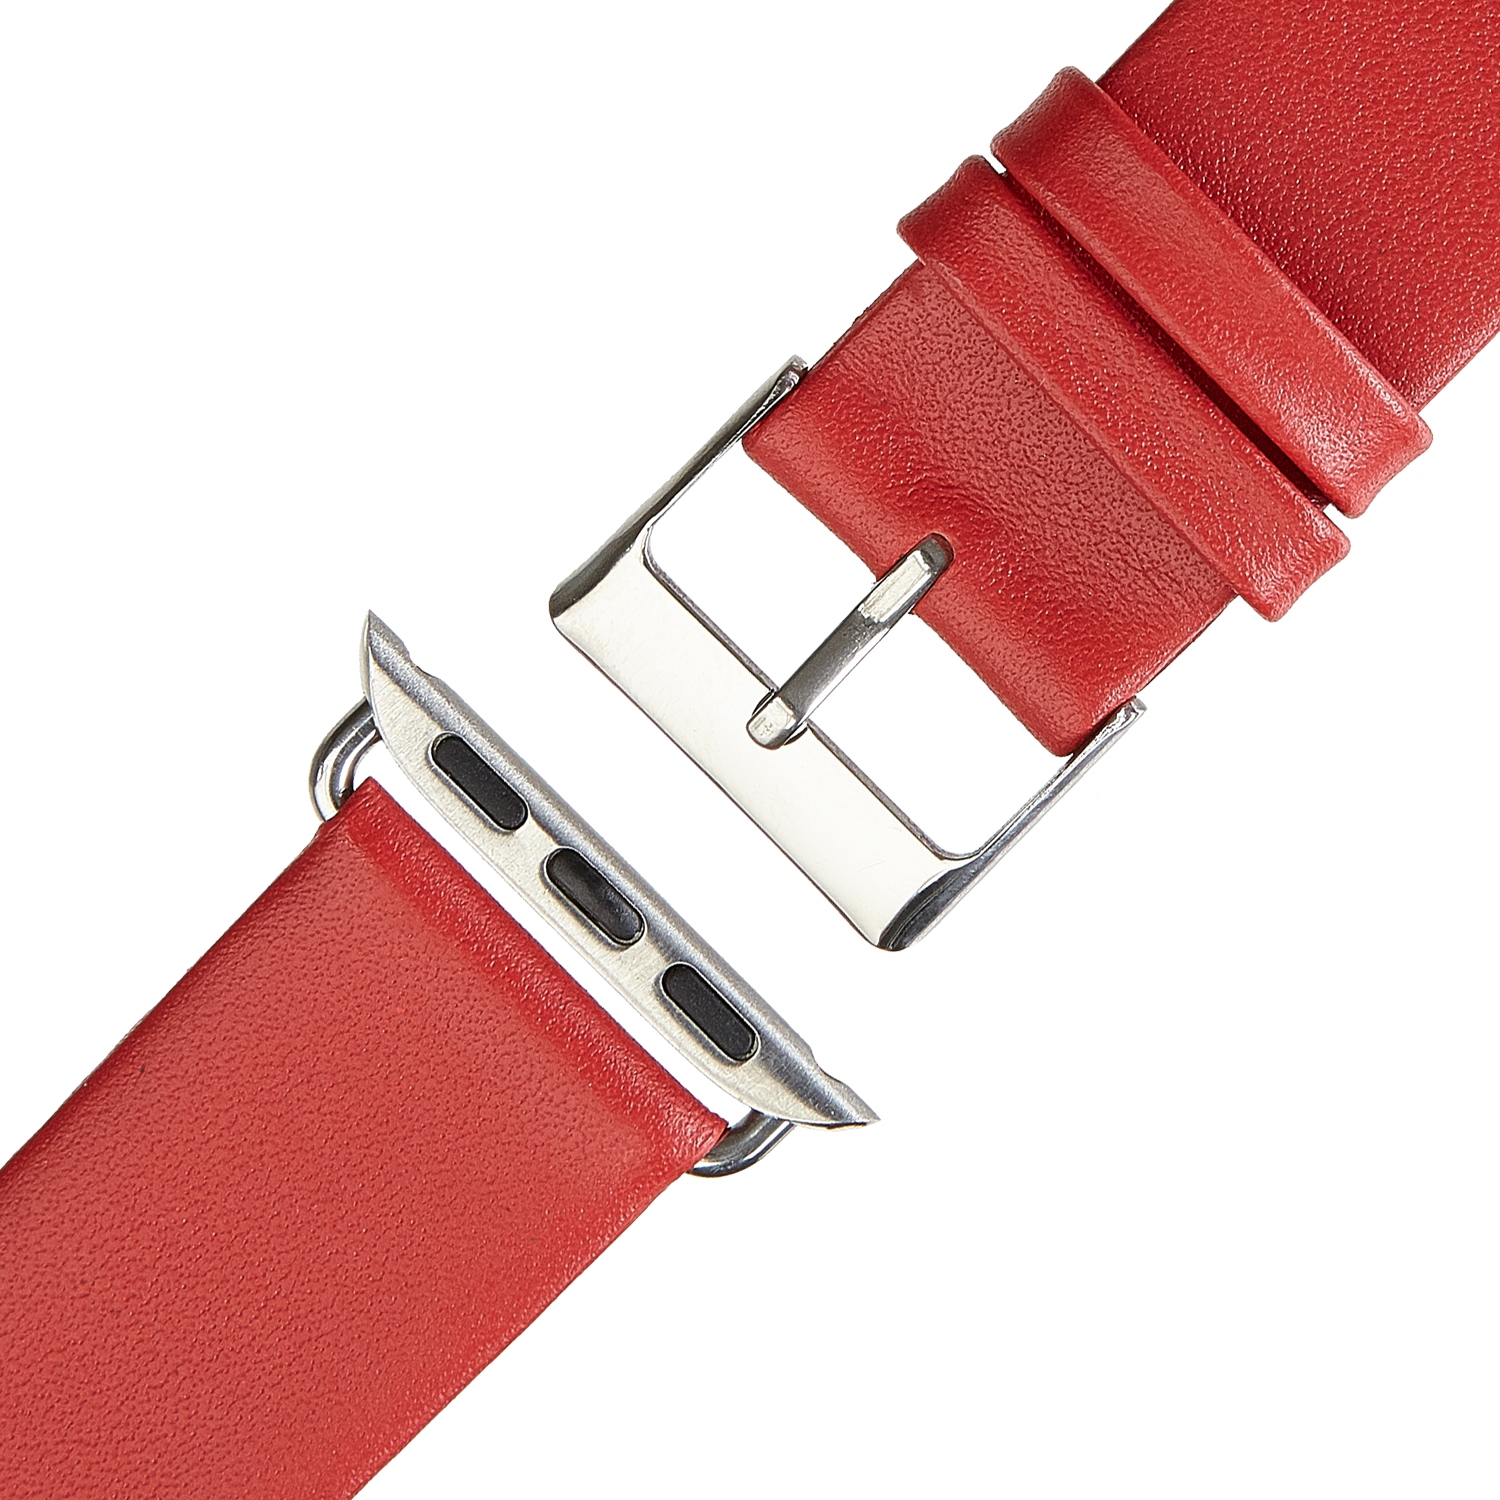 Wildery Leder Armband für Apple Watch Series 1/2/3 und 4/5 in rot